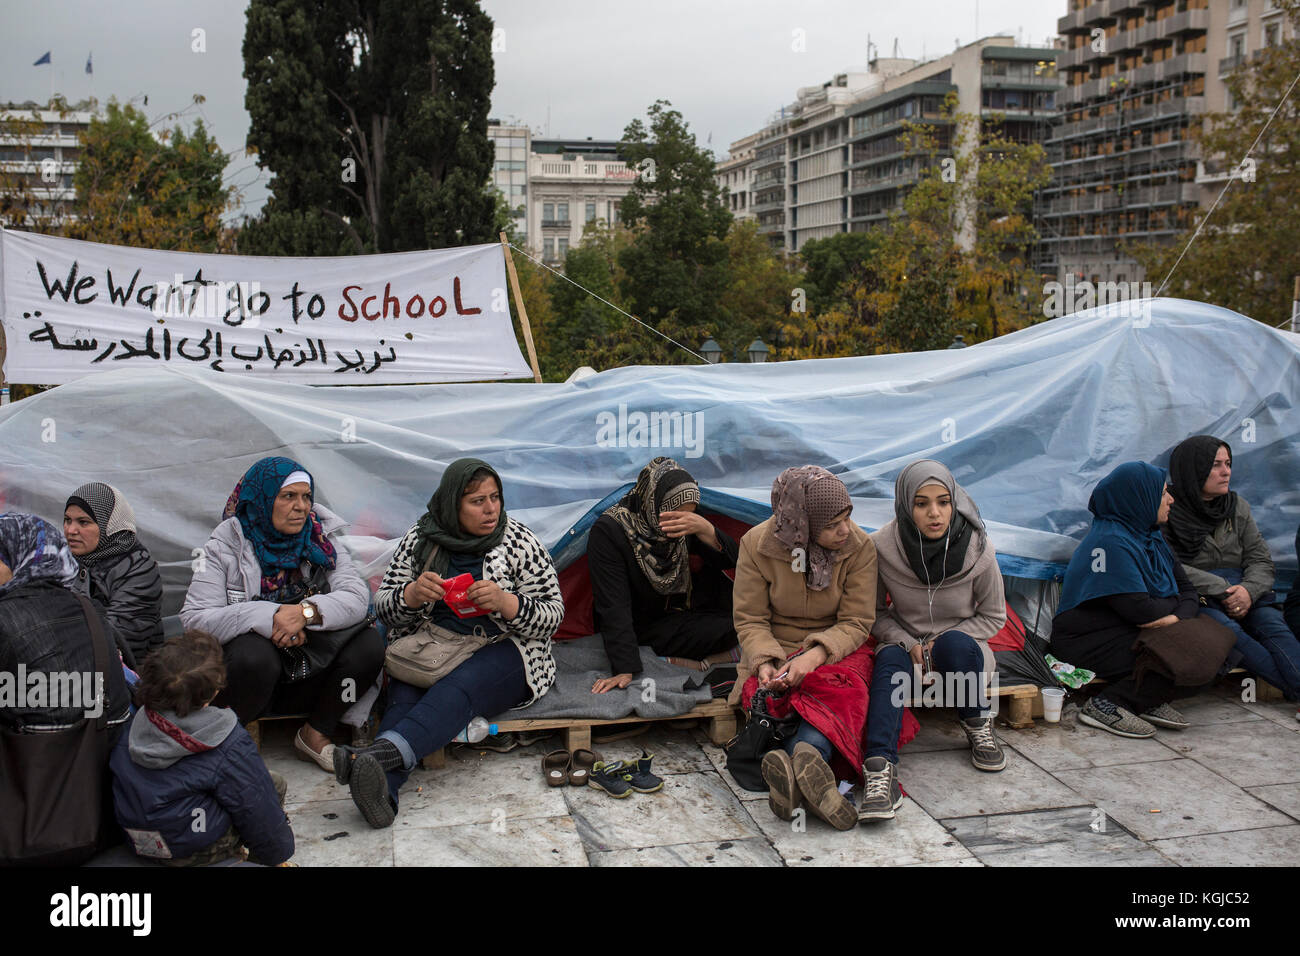 Athens, Greece. 08th Nov, 2017. Refugees sit by their tents at Syntagma square in central Athens, Greece, 08 November - Stock Image